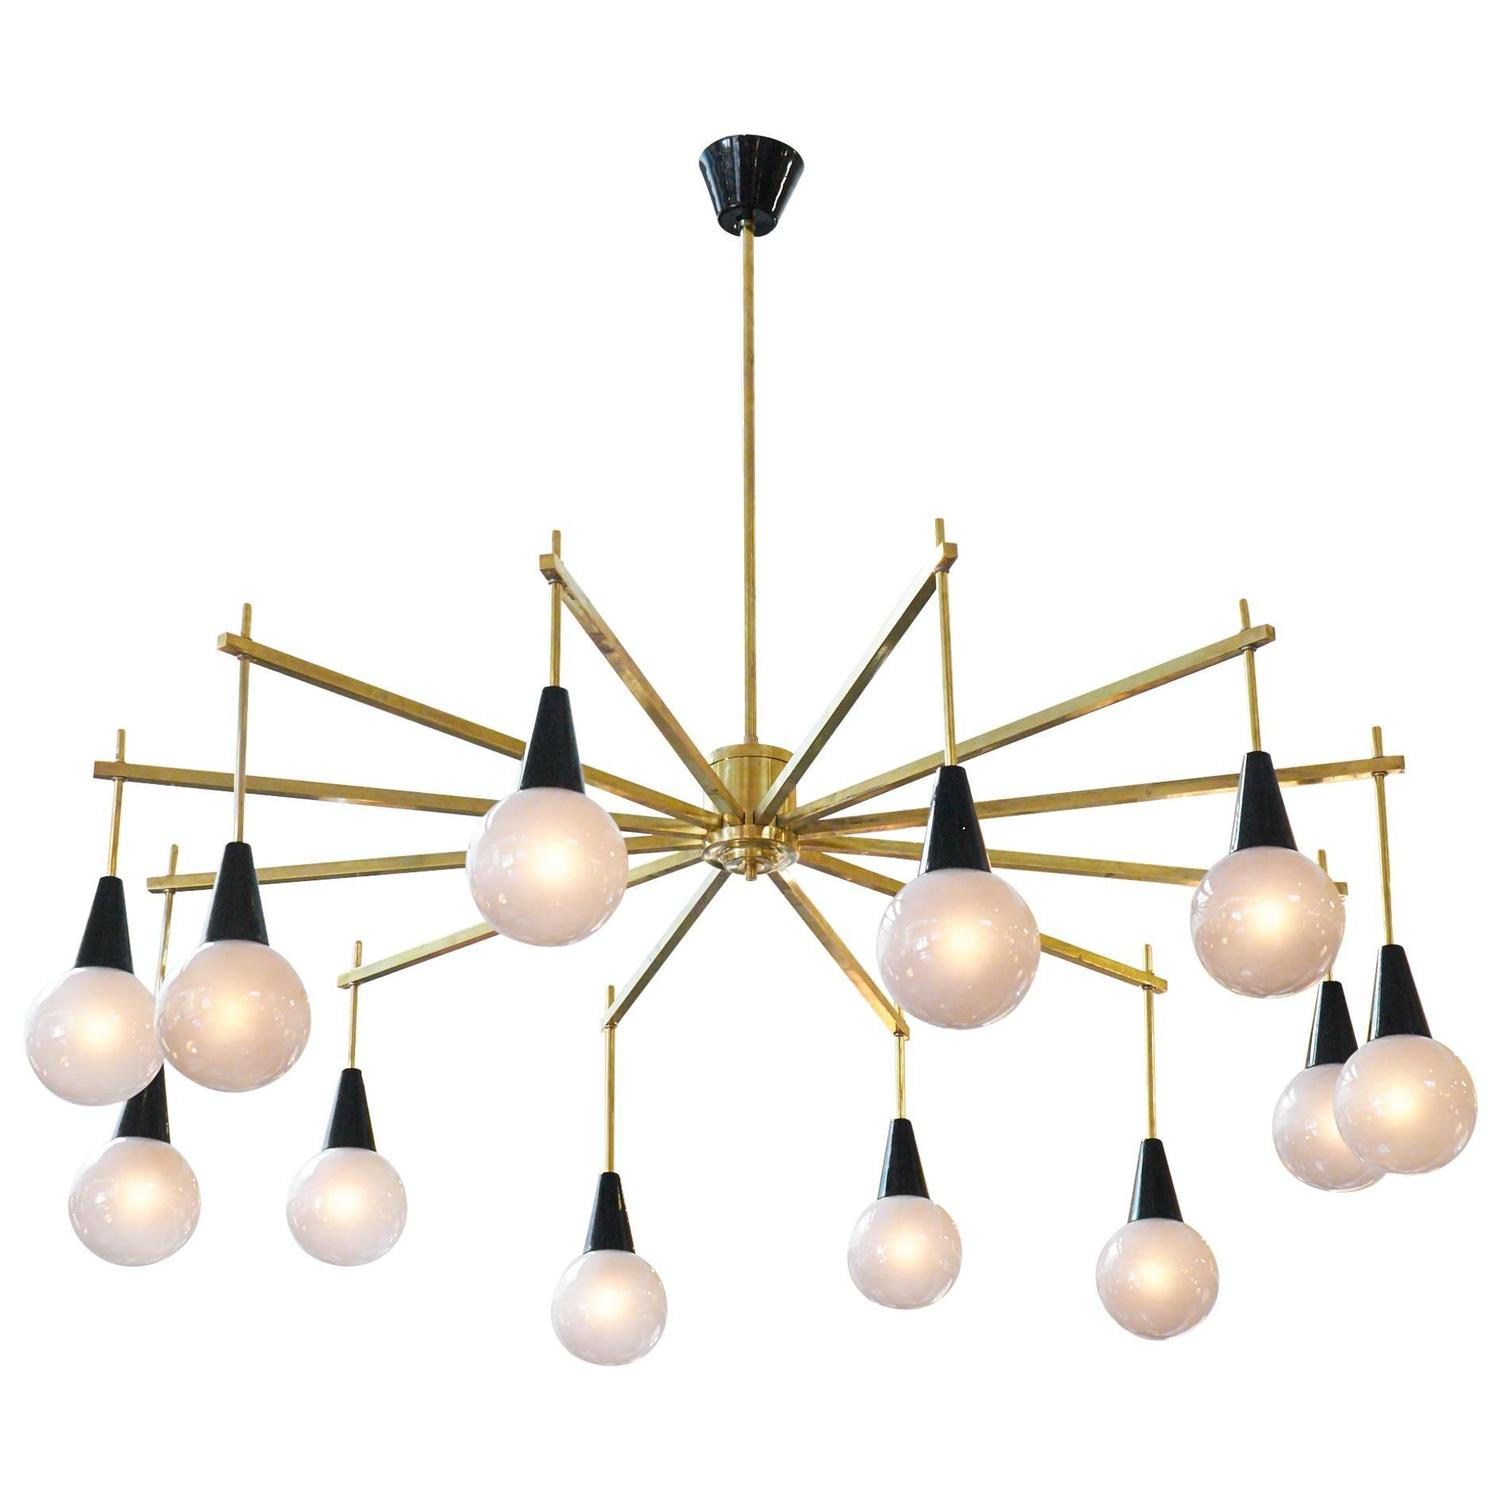 Mid century modern brass and murano glass chandelier for sale at 1stdibs arubaitofo Images